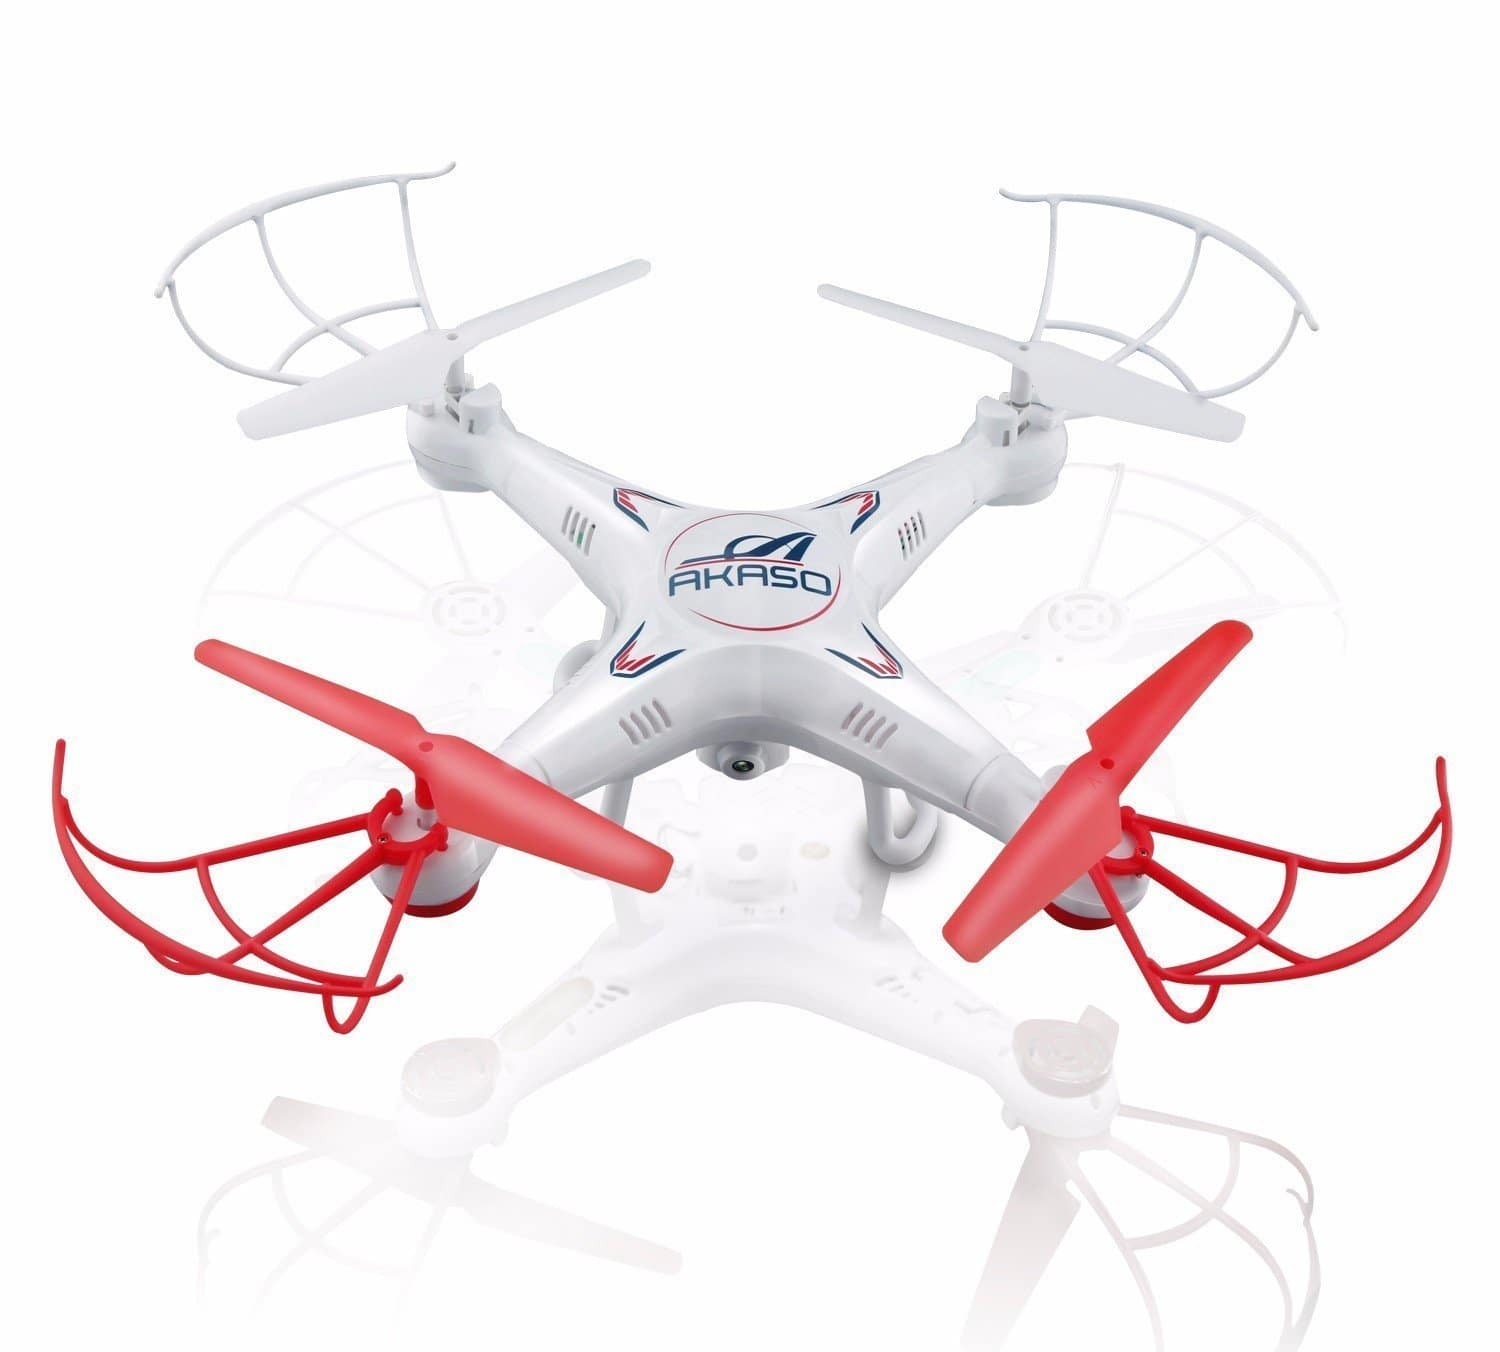 Akaso X5C Drone Quadcopter with HD Camera on sale for $24.49 + Free Shipping